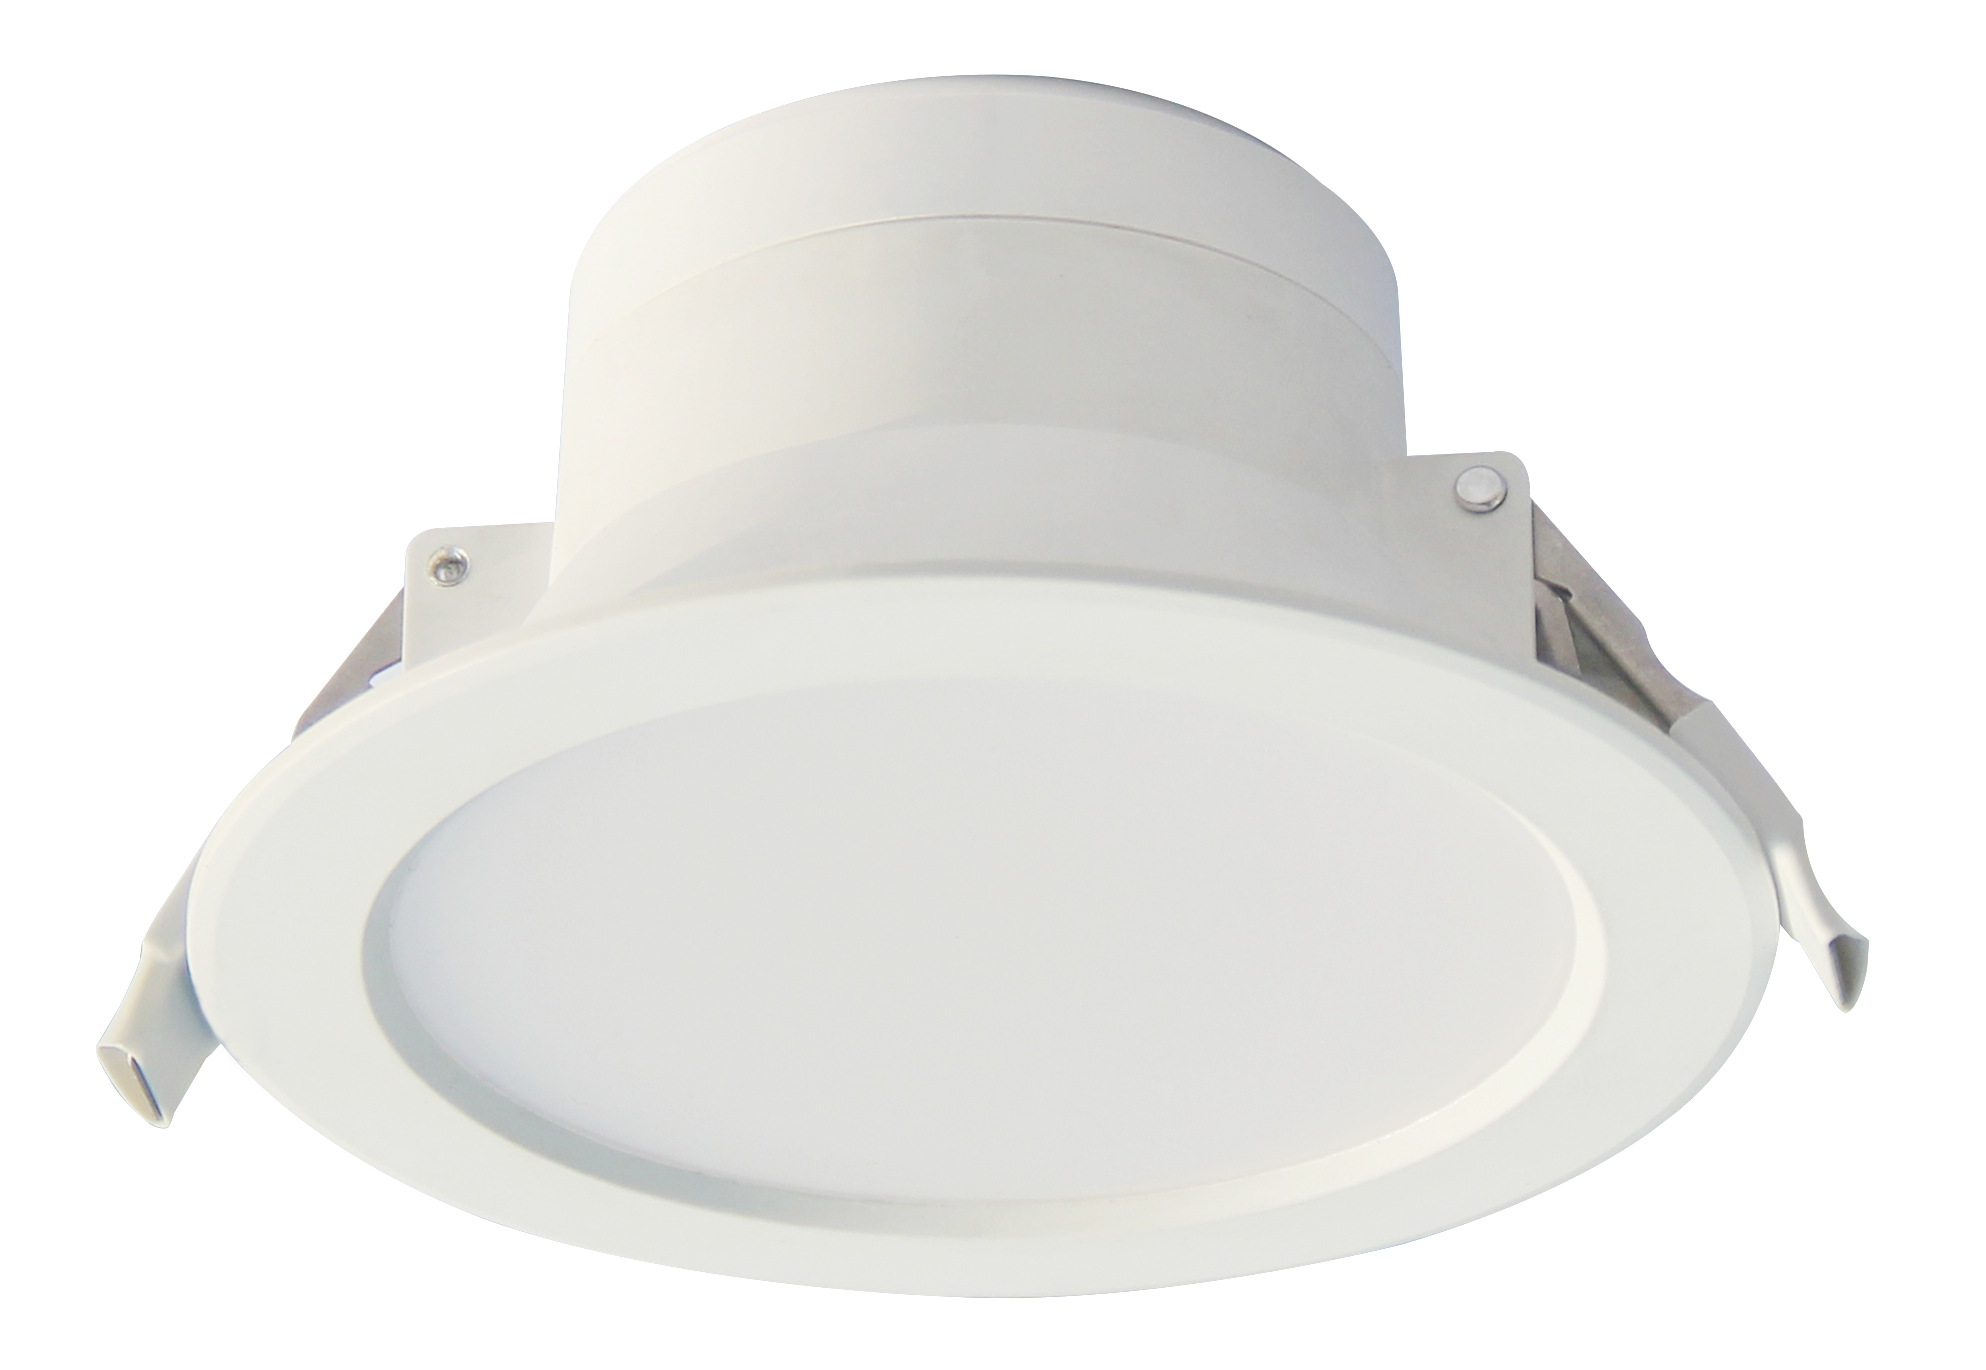 Lamparas De Led Industriales Lamparas Led Lamparas Westinghouse Archivos Catalogo